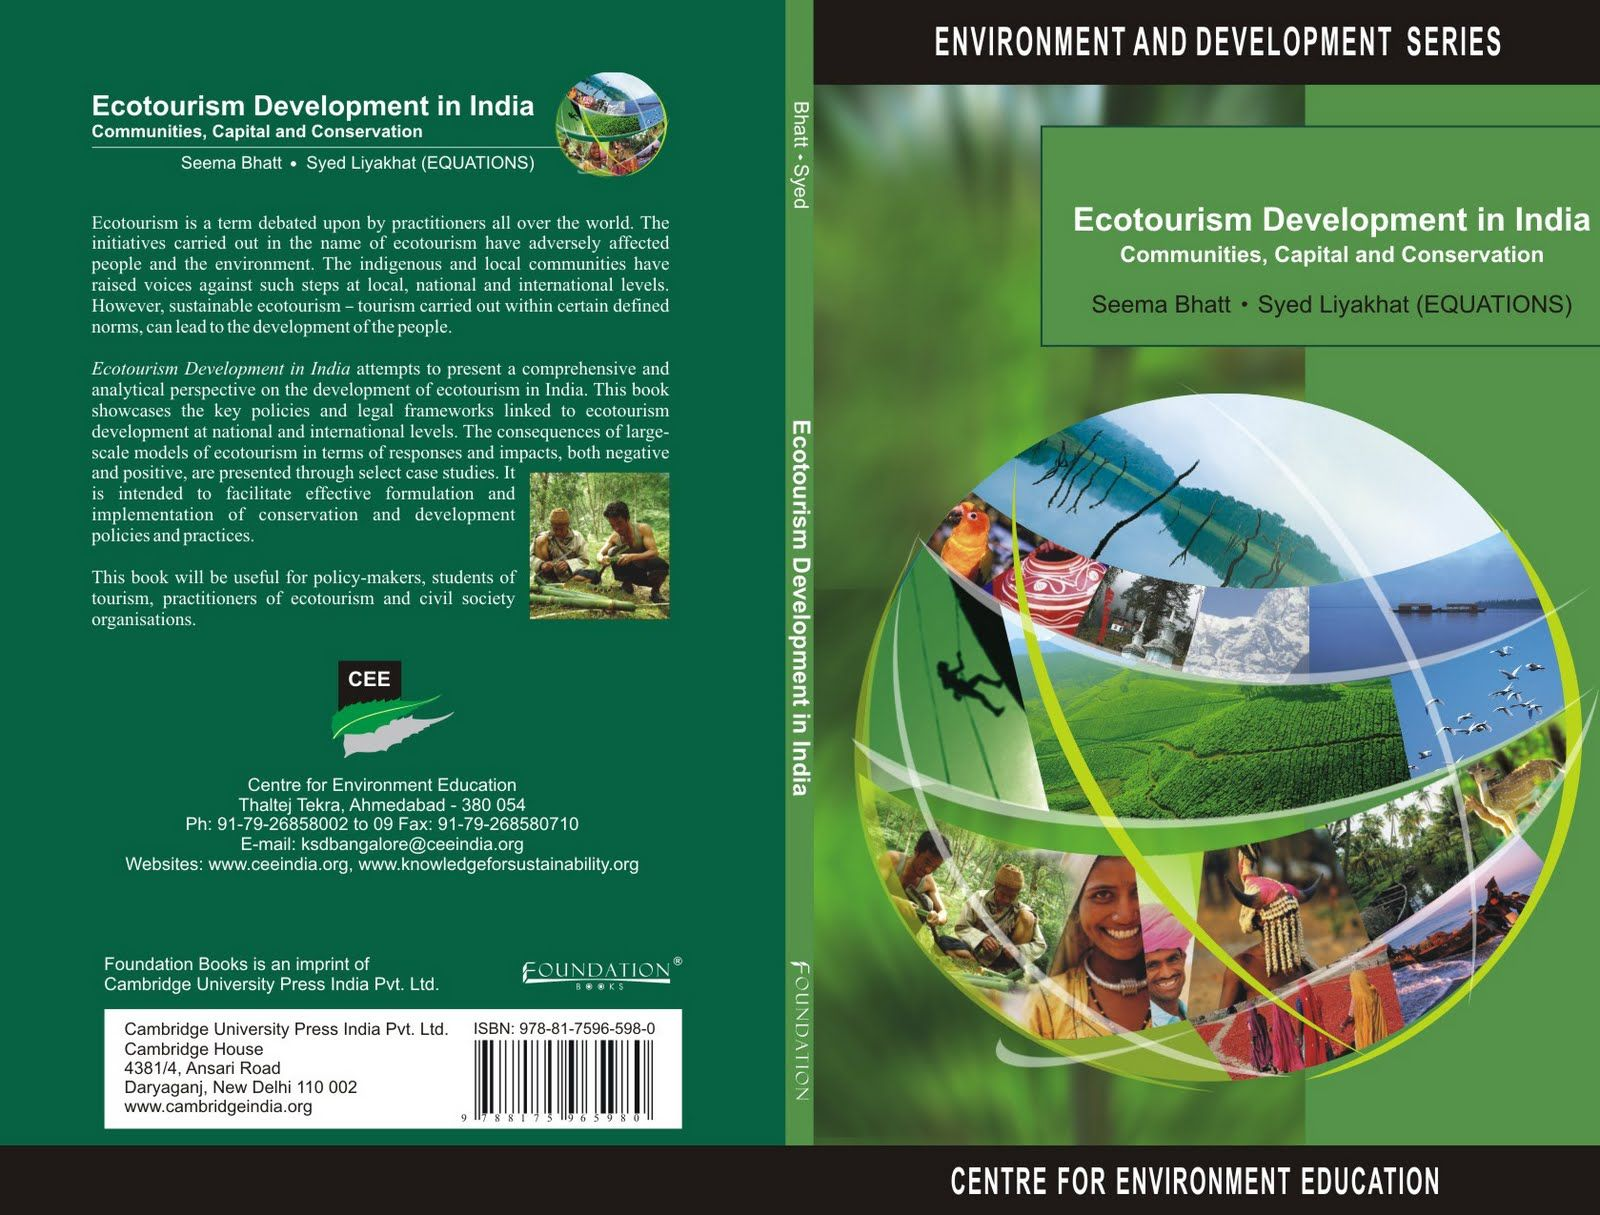 Pin By Khloud Atef On Templates Ecotourism Equations Development